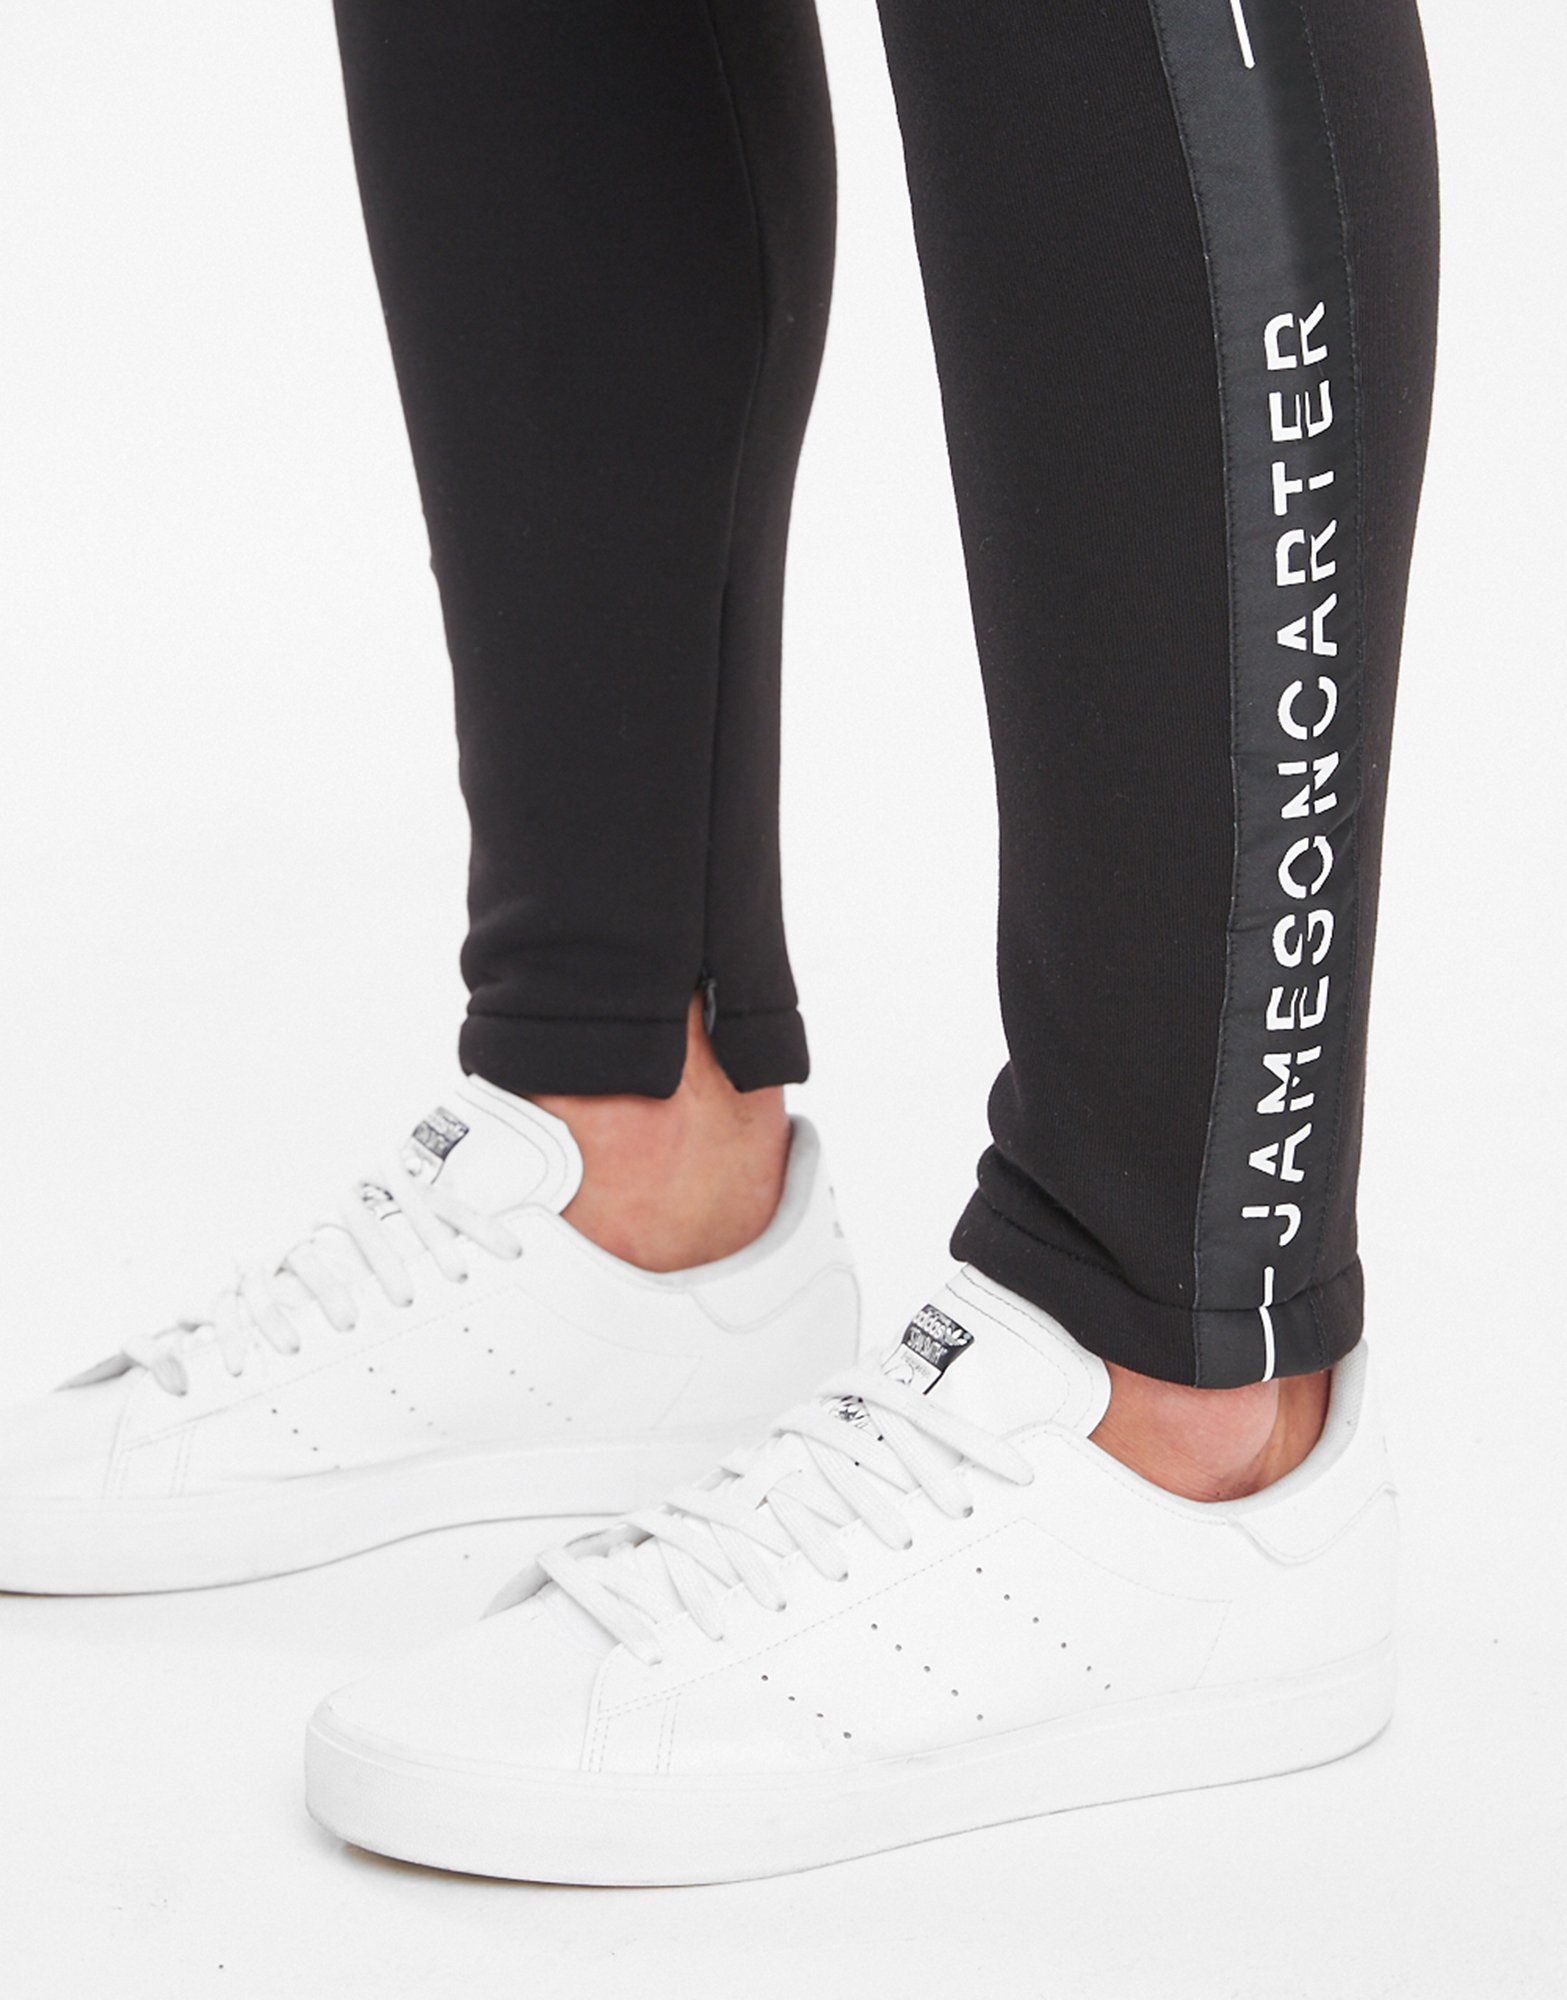 JAMESON CARTER Bouverie Joggers